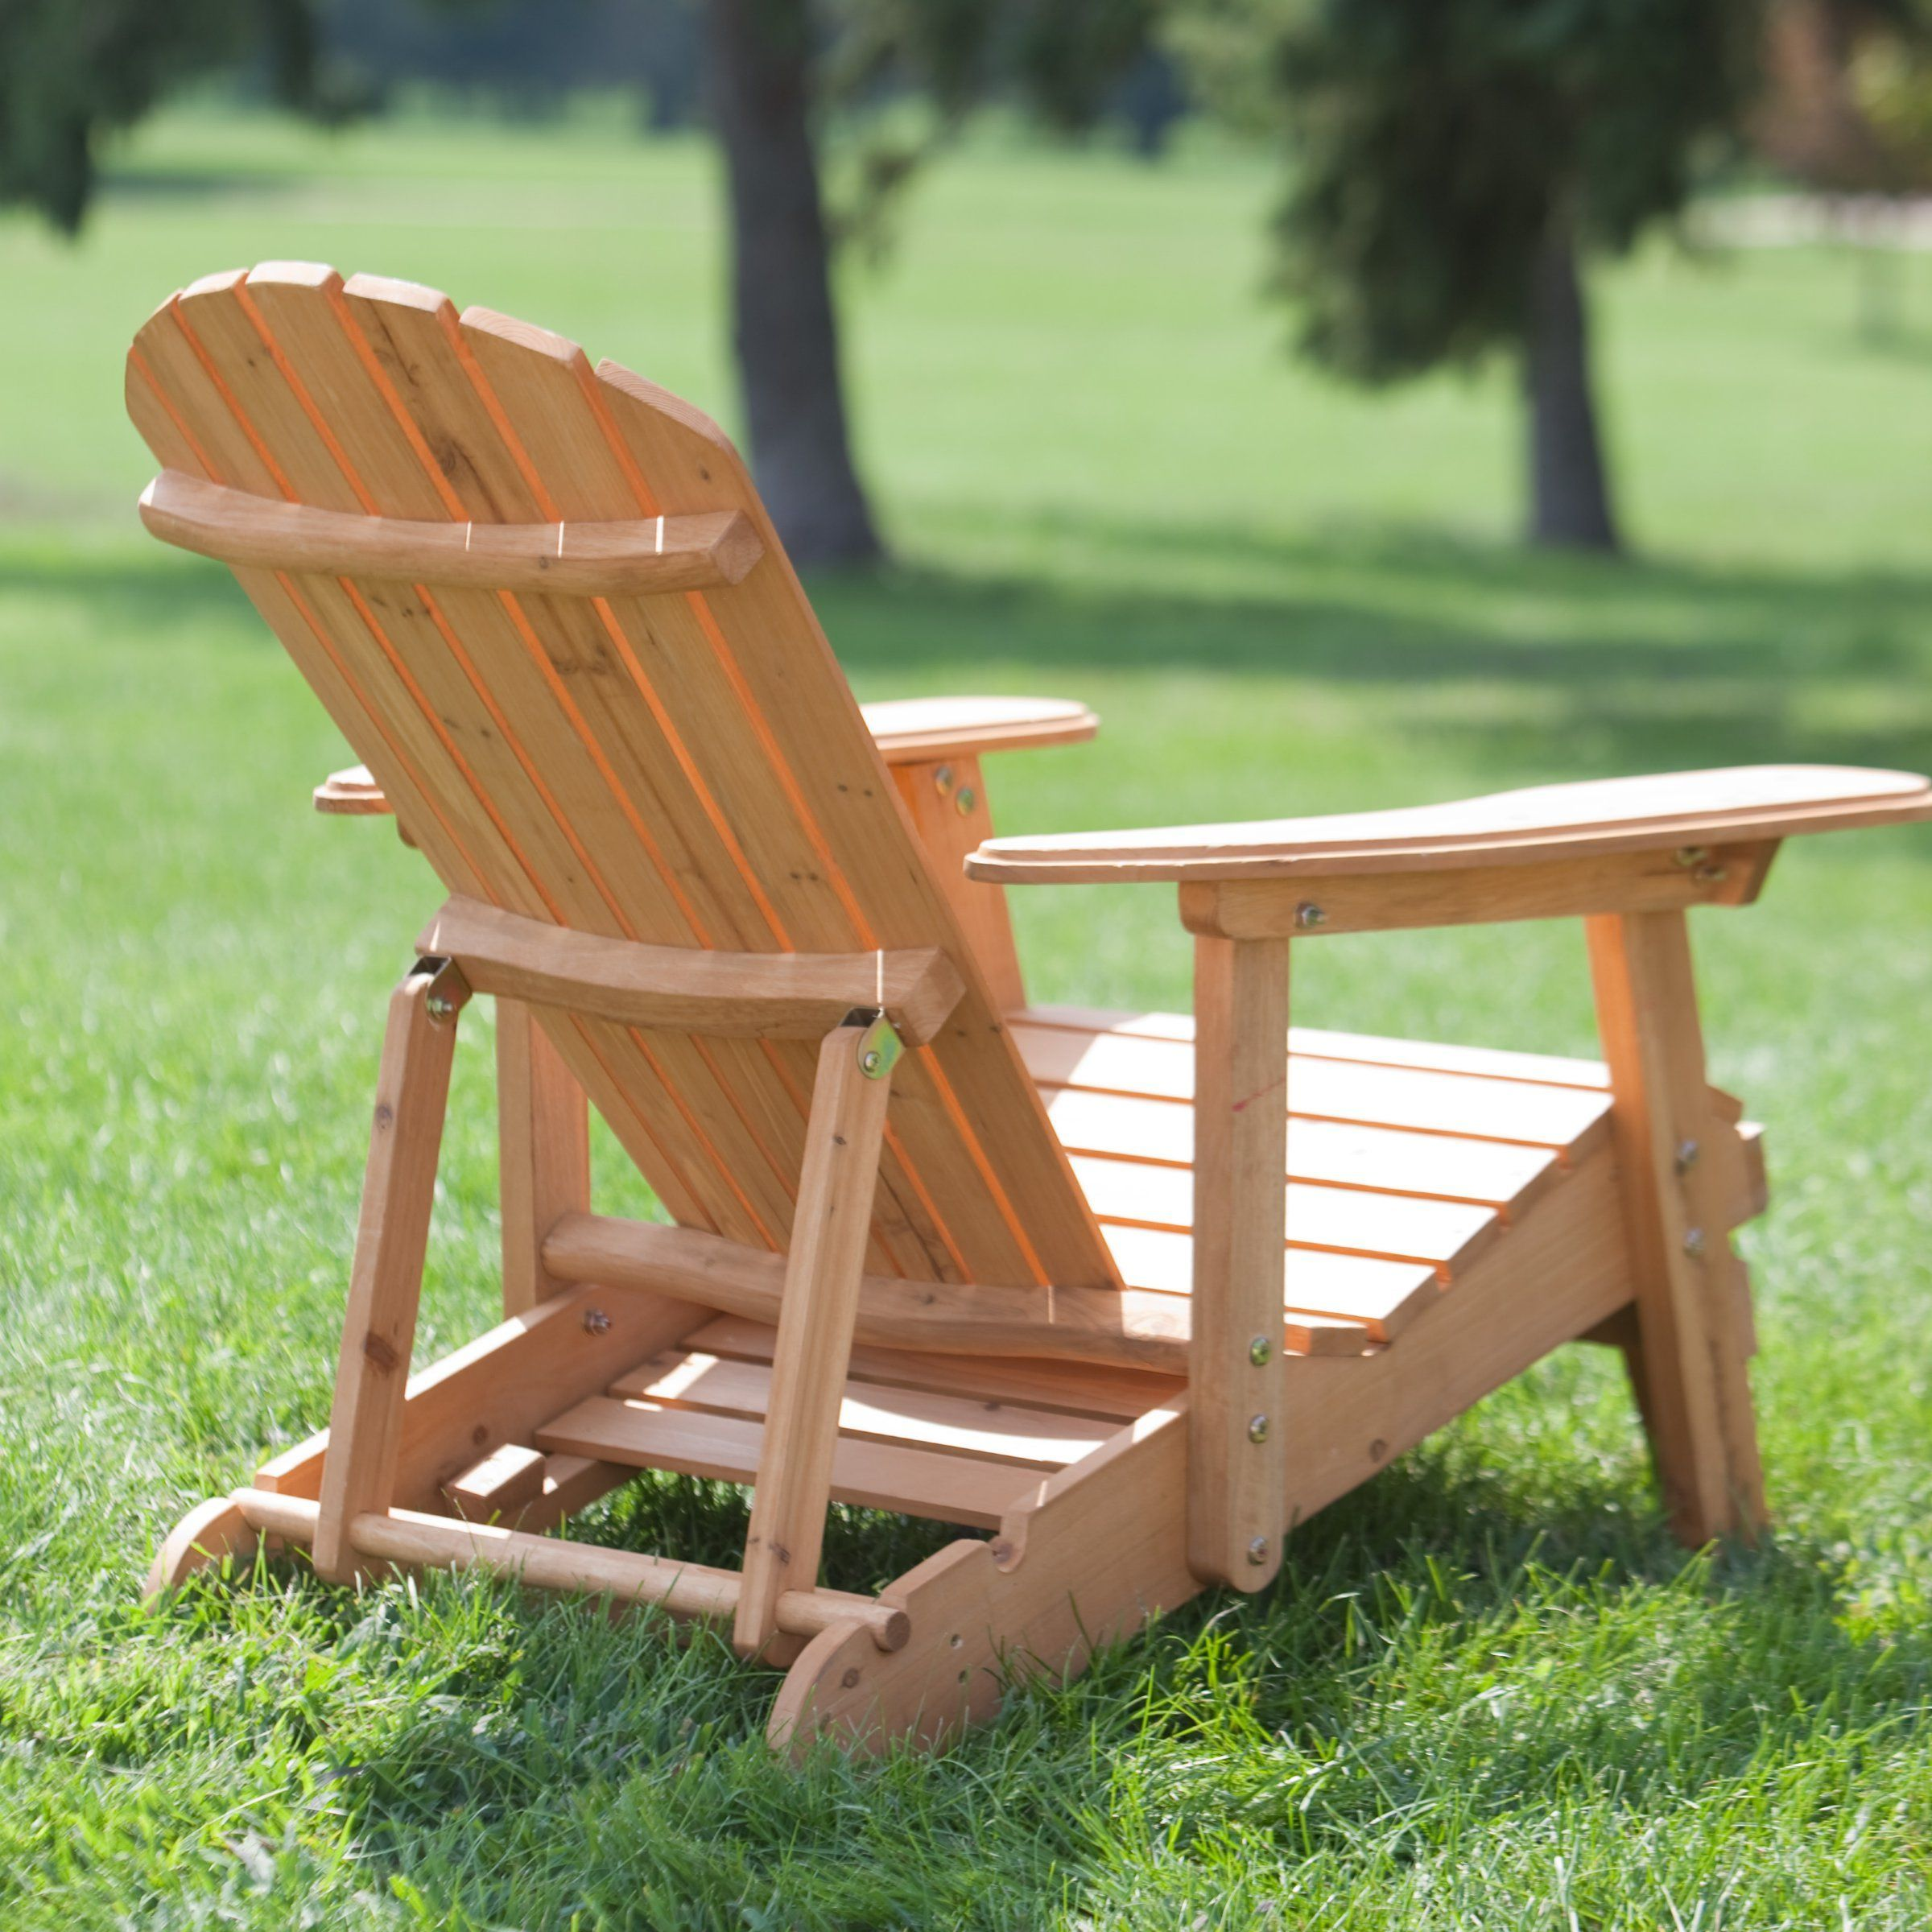 C Coast Daddy Reclining Tall Wood Adirondack Chair With Pull Out Ottoman Chairs At Hayneedle Adirondackchair